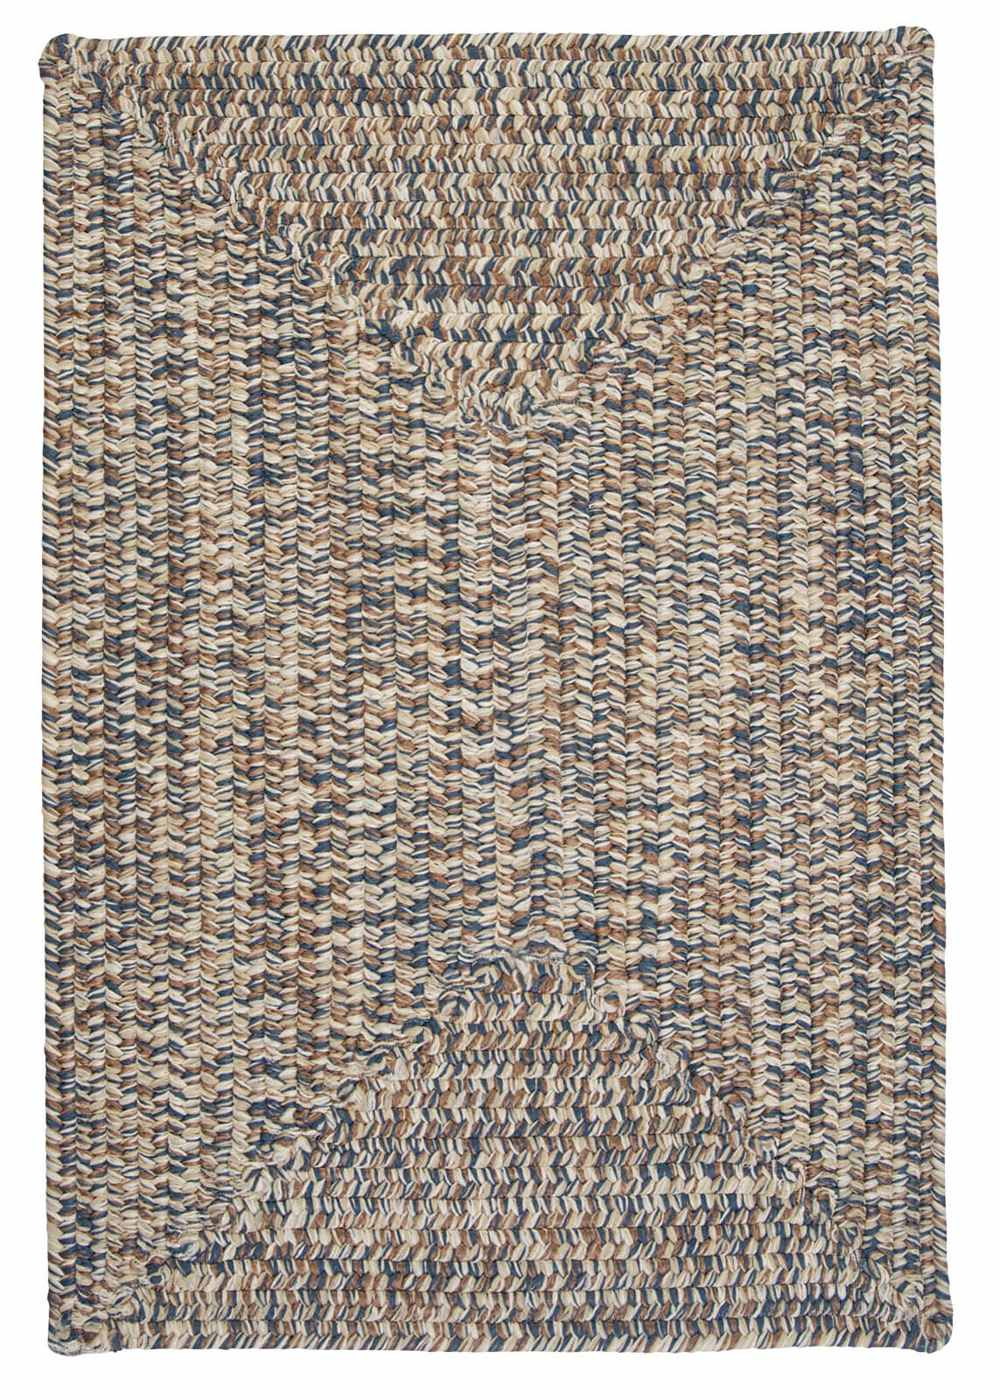 Super Area Rugs 8ft. x 11ft. Indoor/Outdoor Reversible Braided Rug Lake Blue Color (8x11) at Sears.com